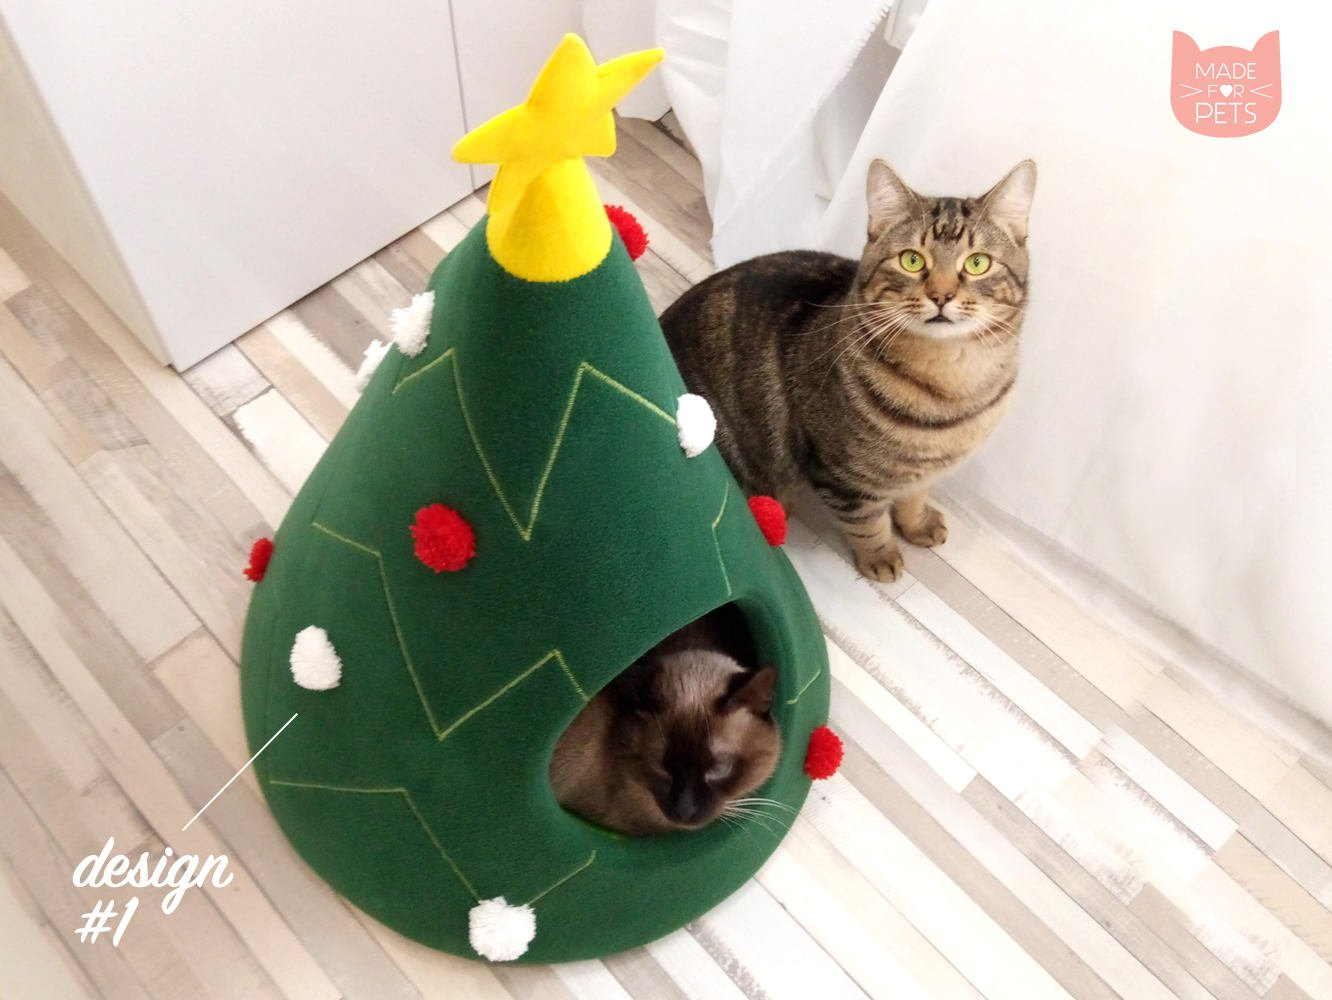 Christmas tree cat house, Cat furniture, Christmas gift, Pet furniture, Cat teepee, Dog bed, Gift idea